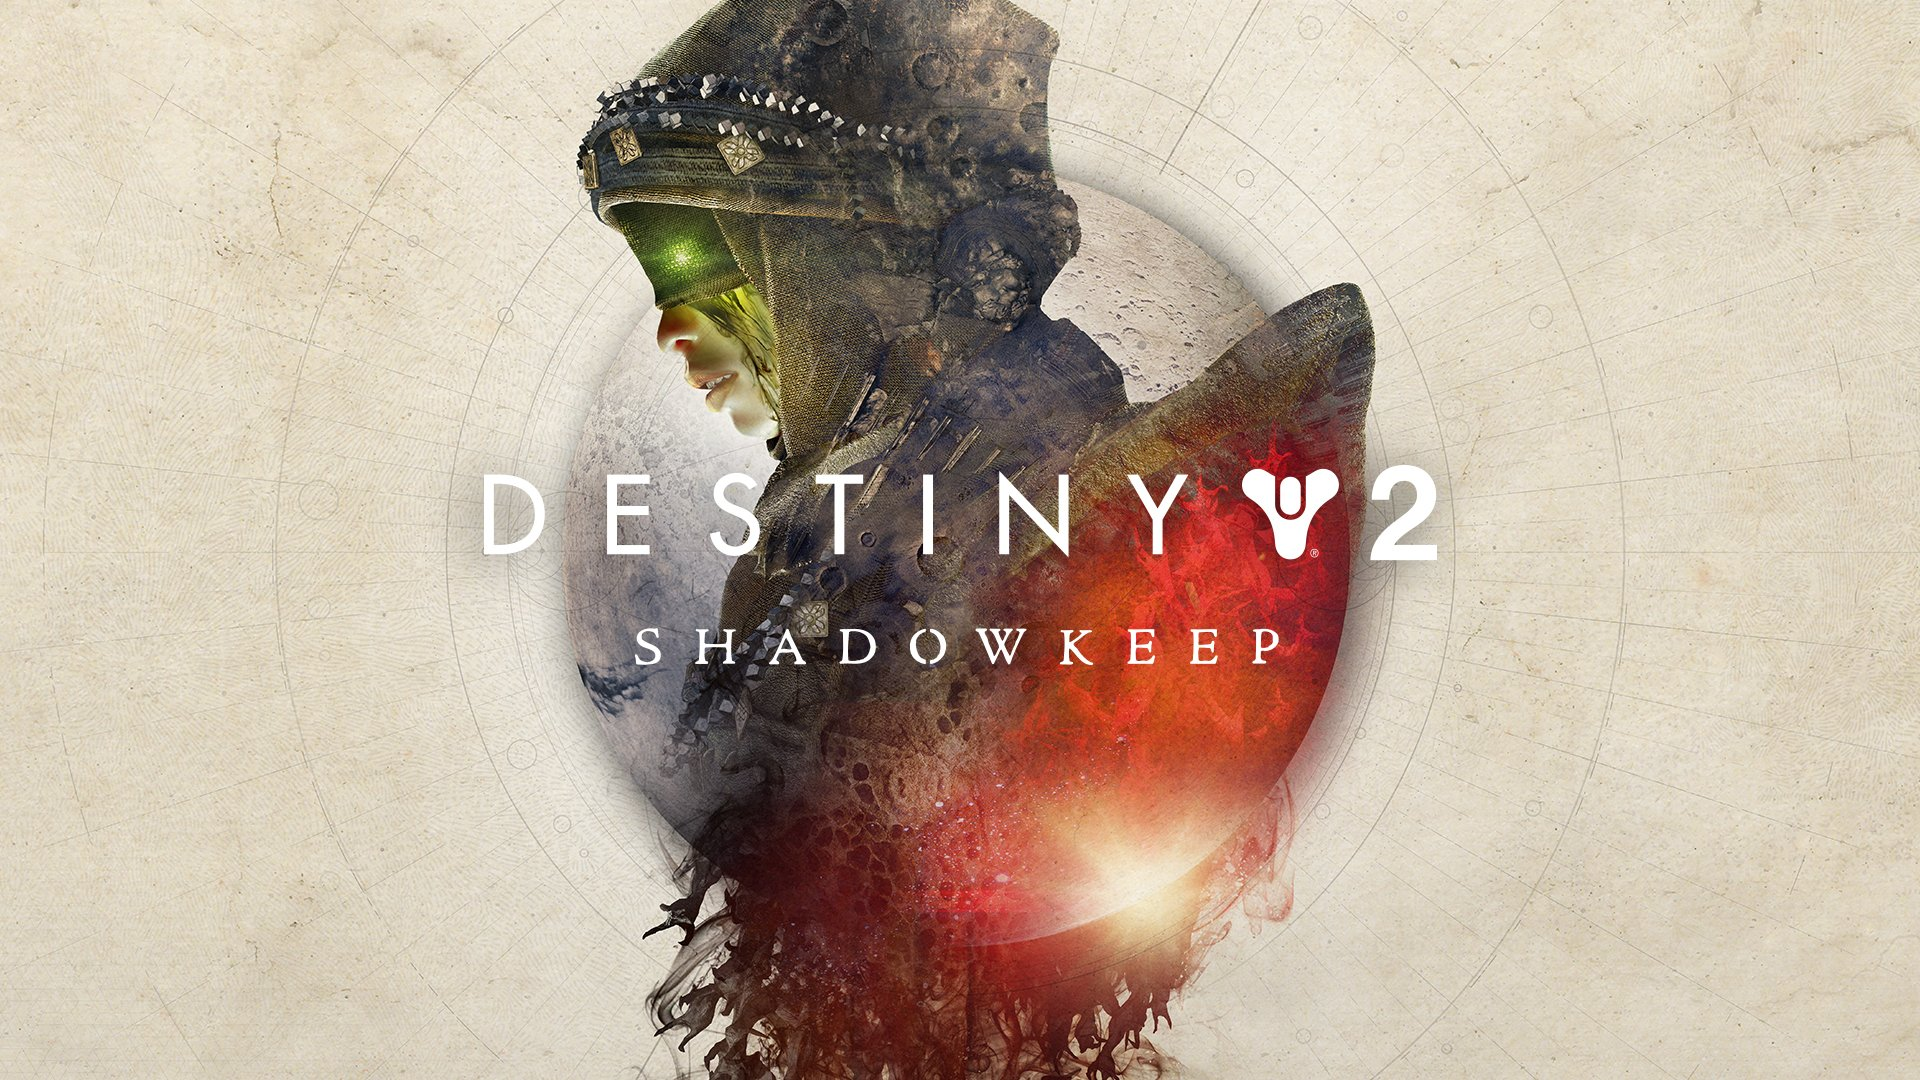 Bungie On Twitter Background S Haunted Download The Destiny 2